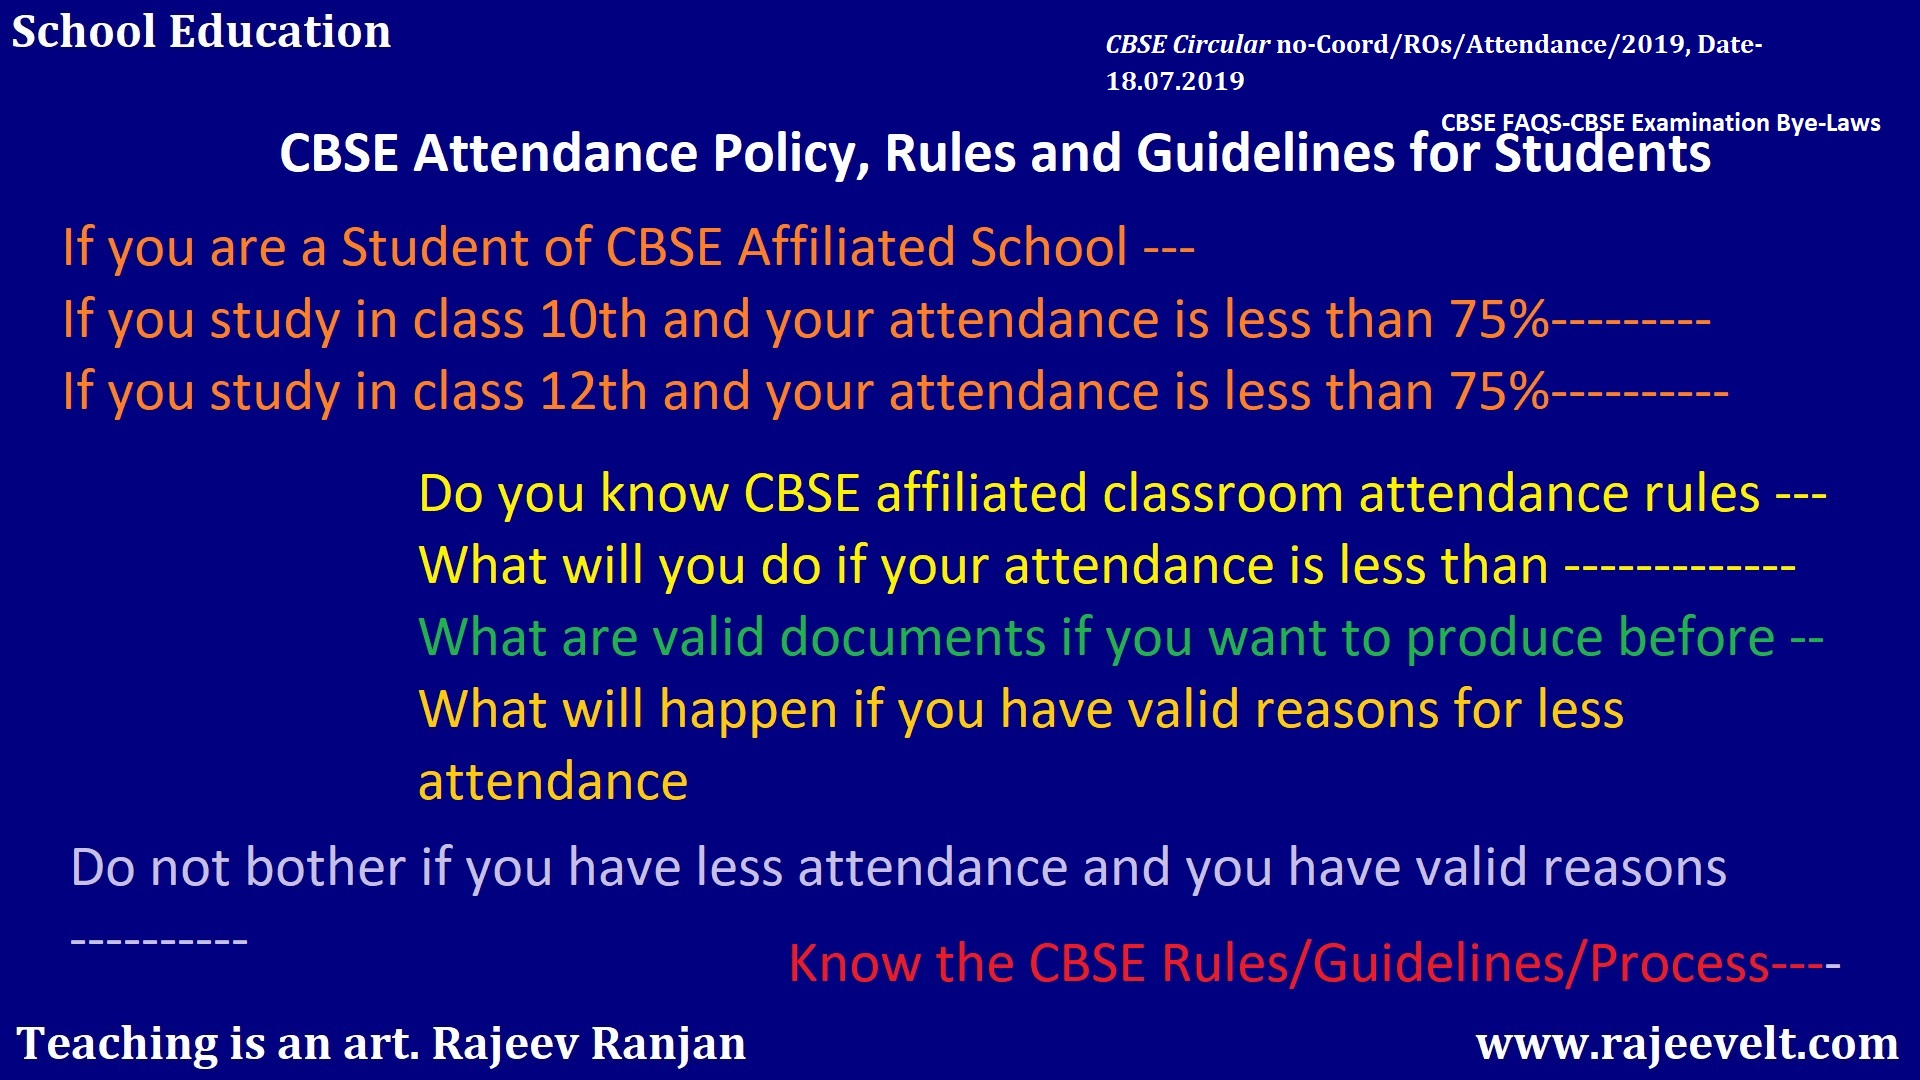 cbse attendance rules for class 10 and 12